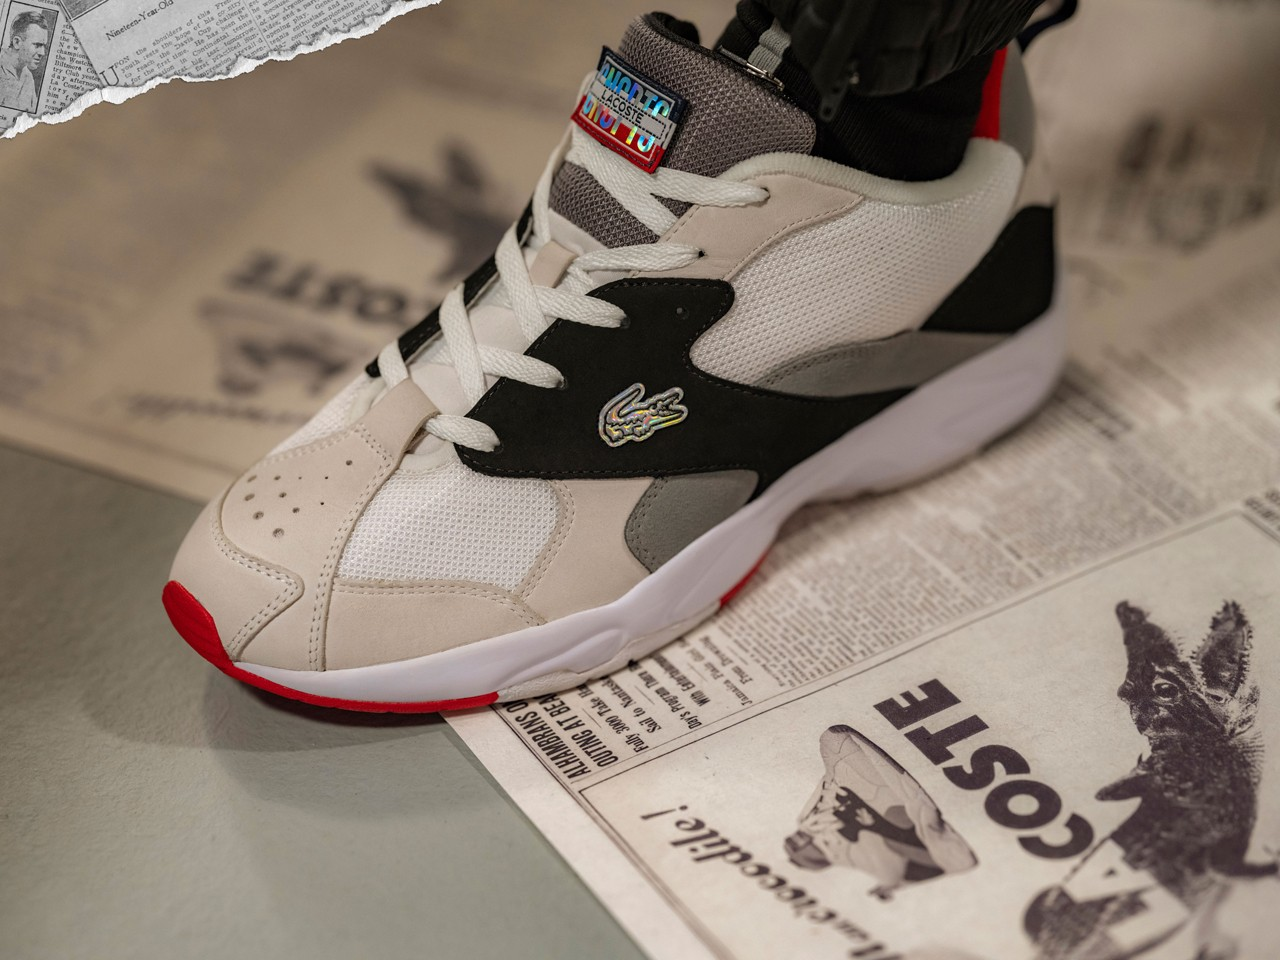 lacoste concepts storm 96 sneaker release info drop date Boston when available limited edition where to cop clothing apparel august 14 2020